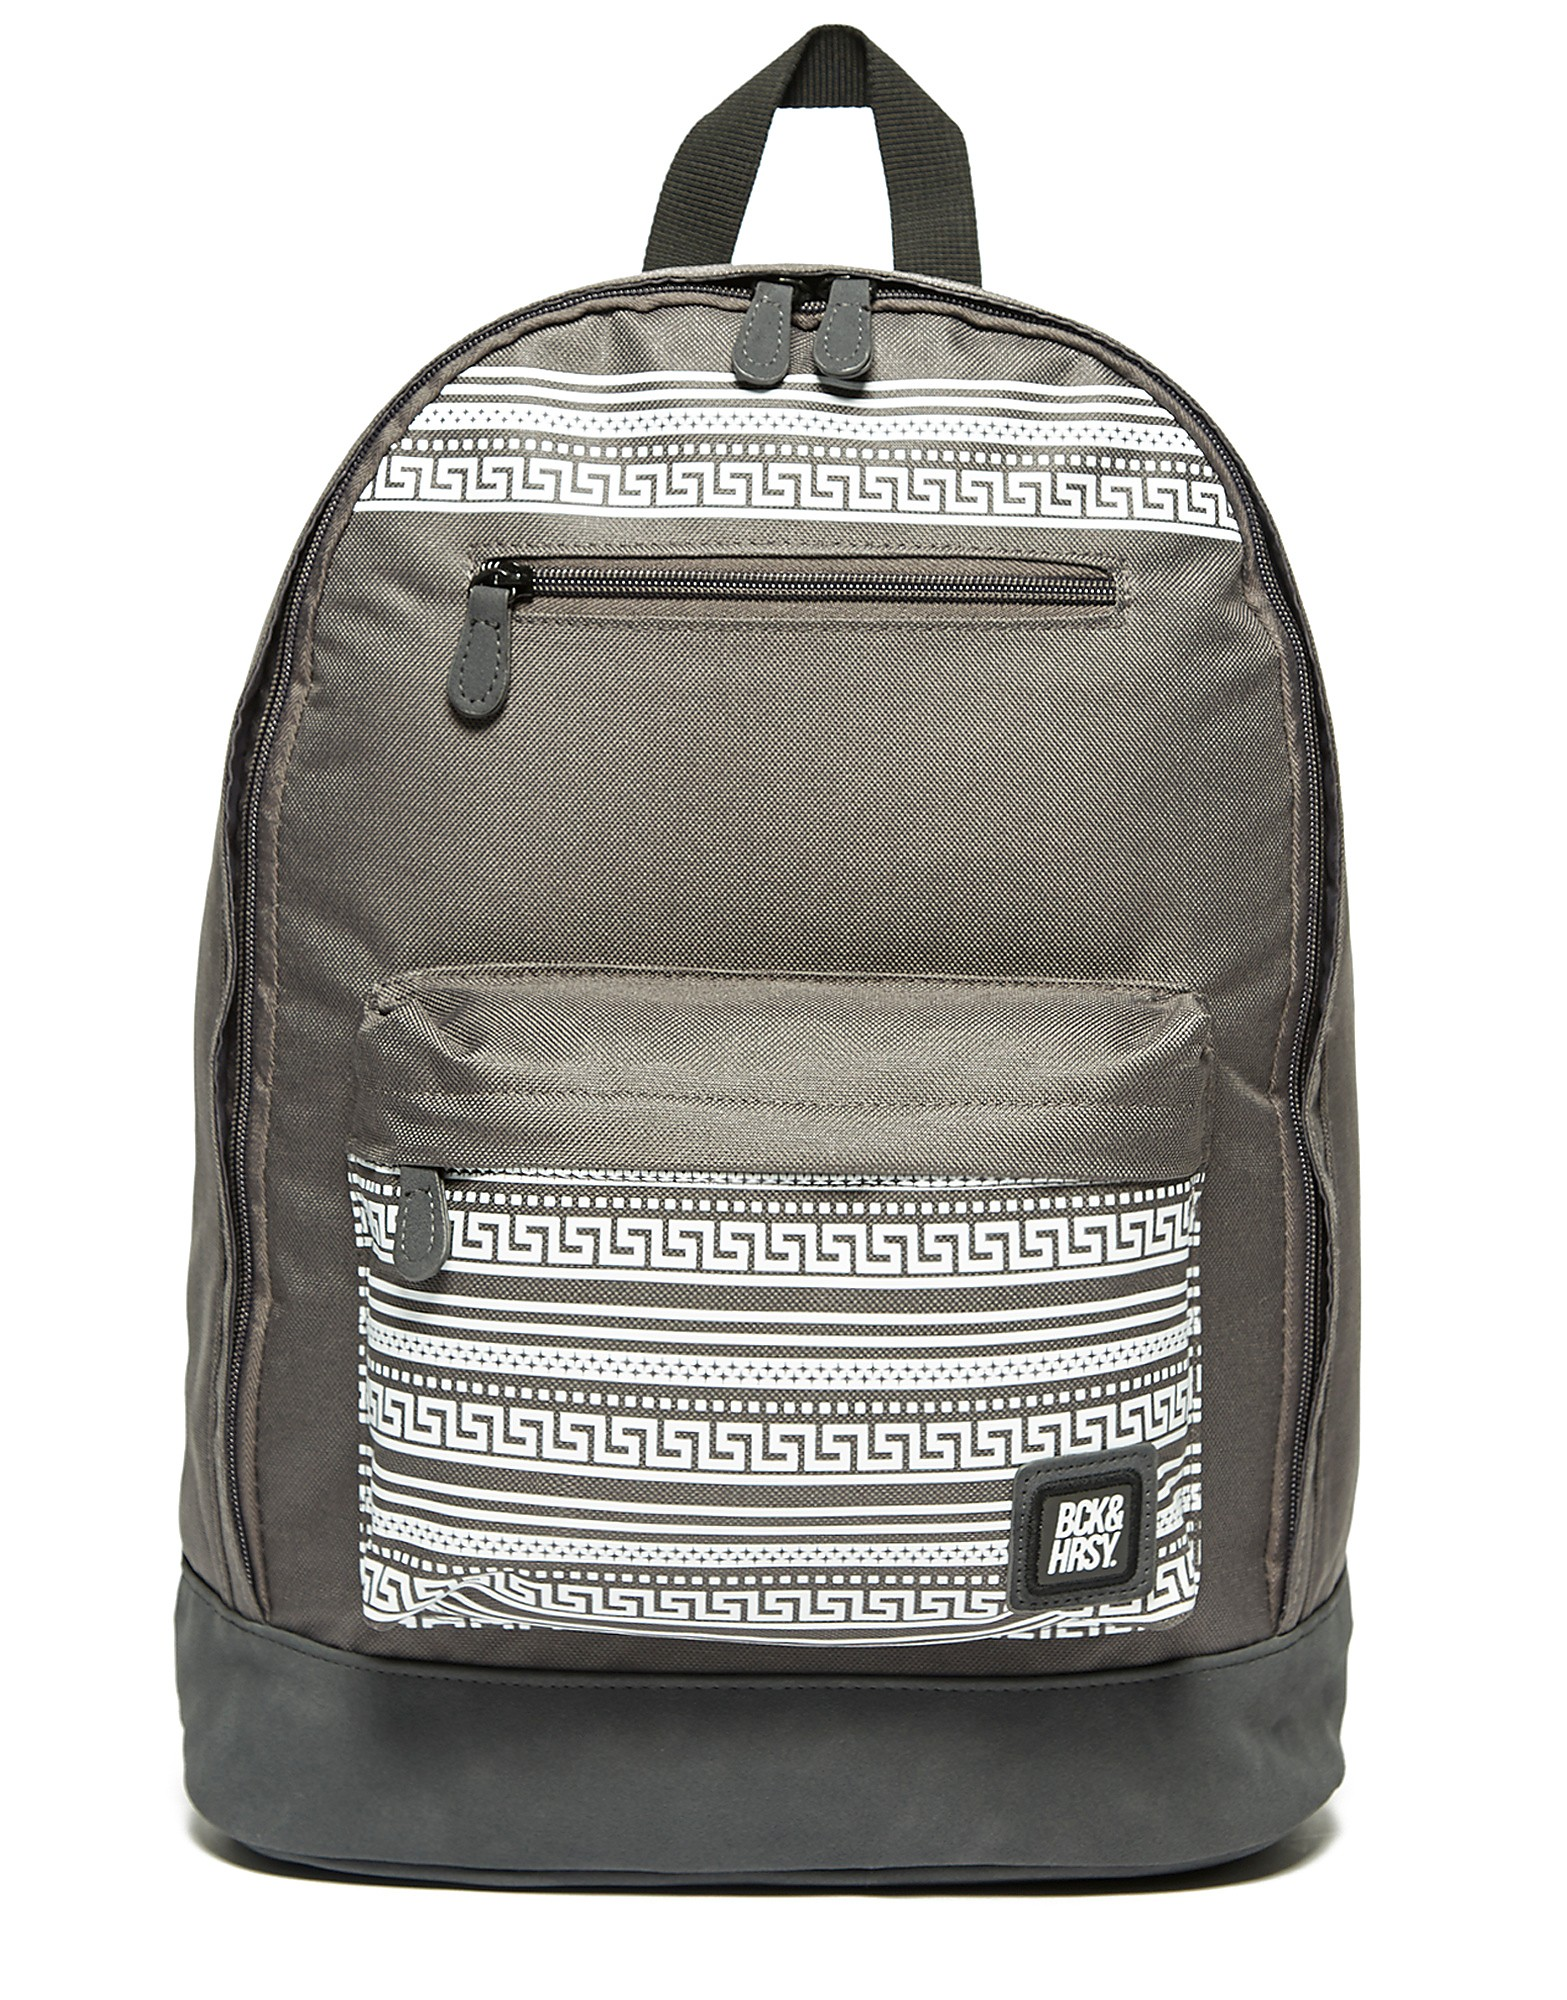 Beck and Hersey Roman Backpack